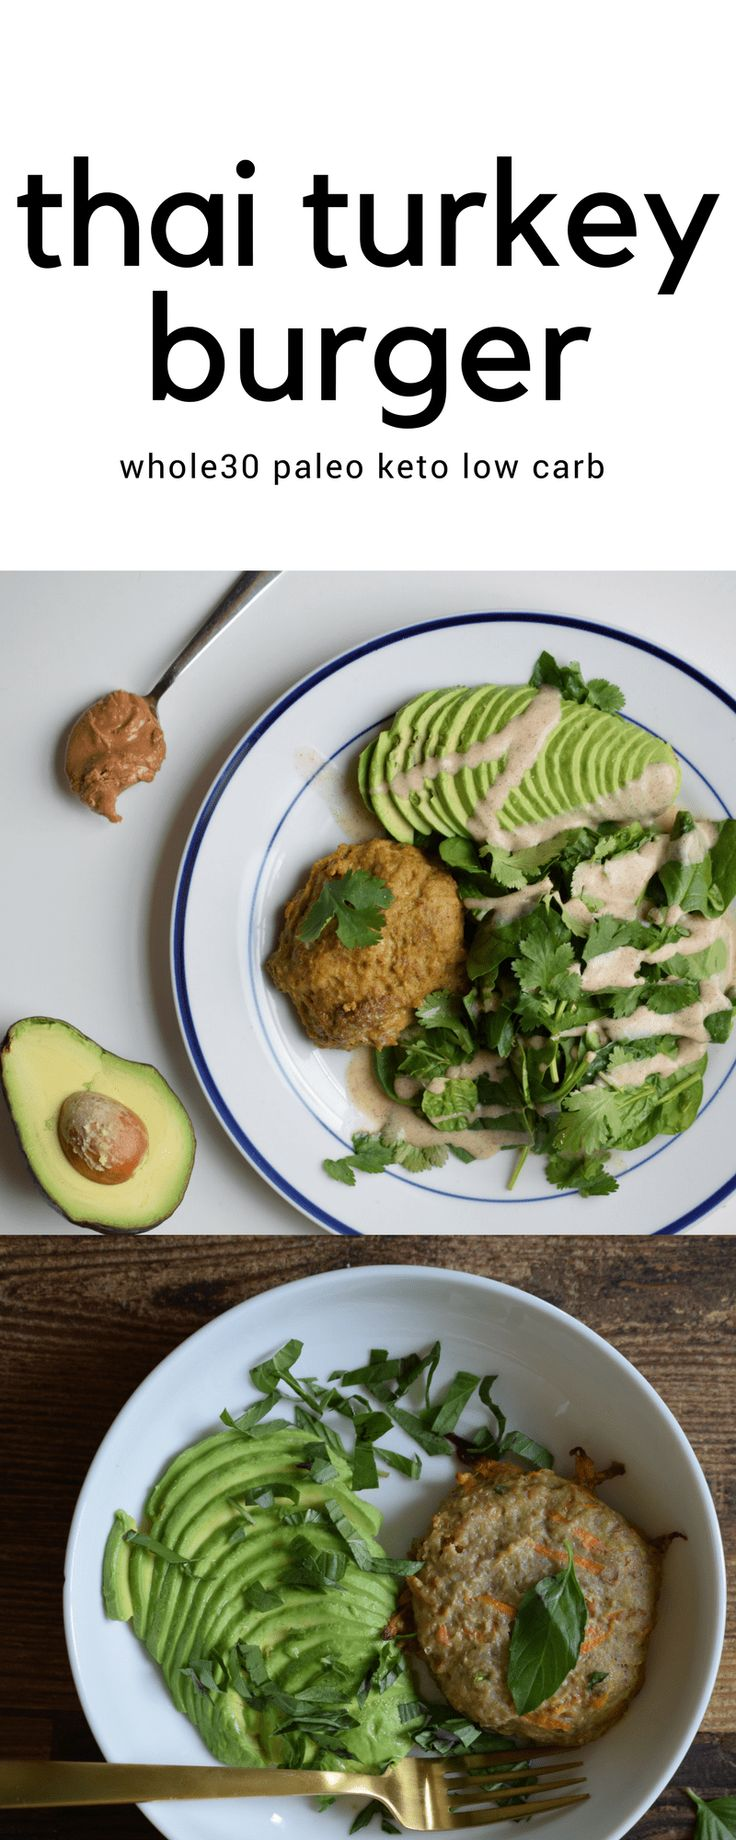 Delicious Nut Butter Thai Inspired Turkey Burger (Whole30, Paleo, Keto)